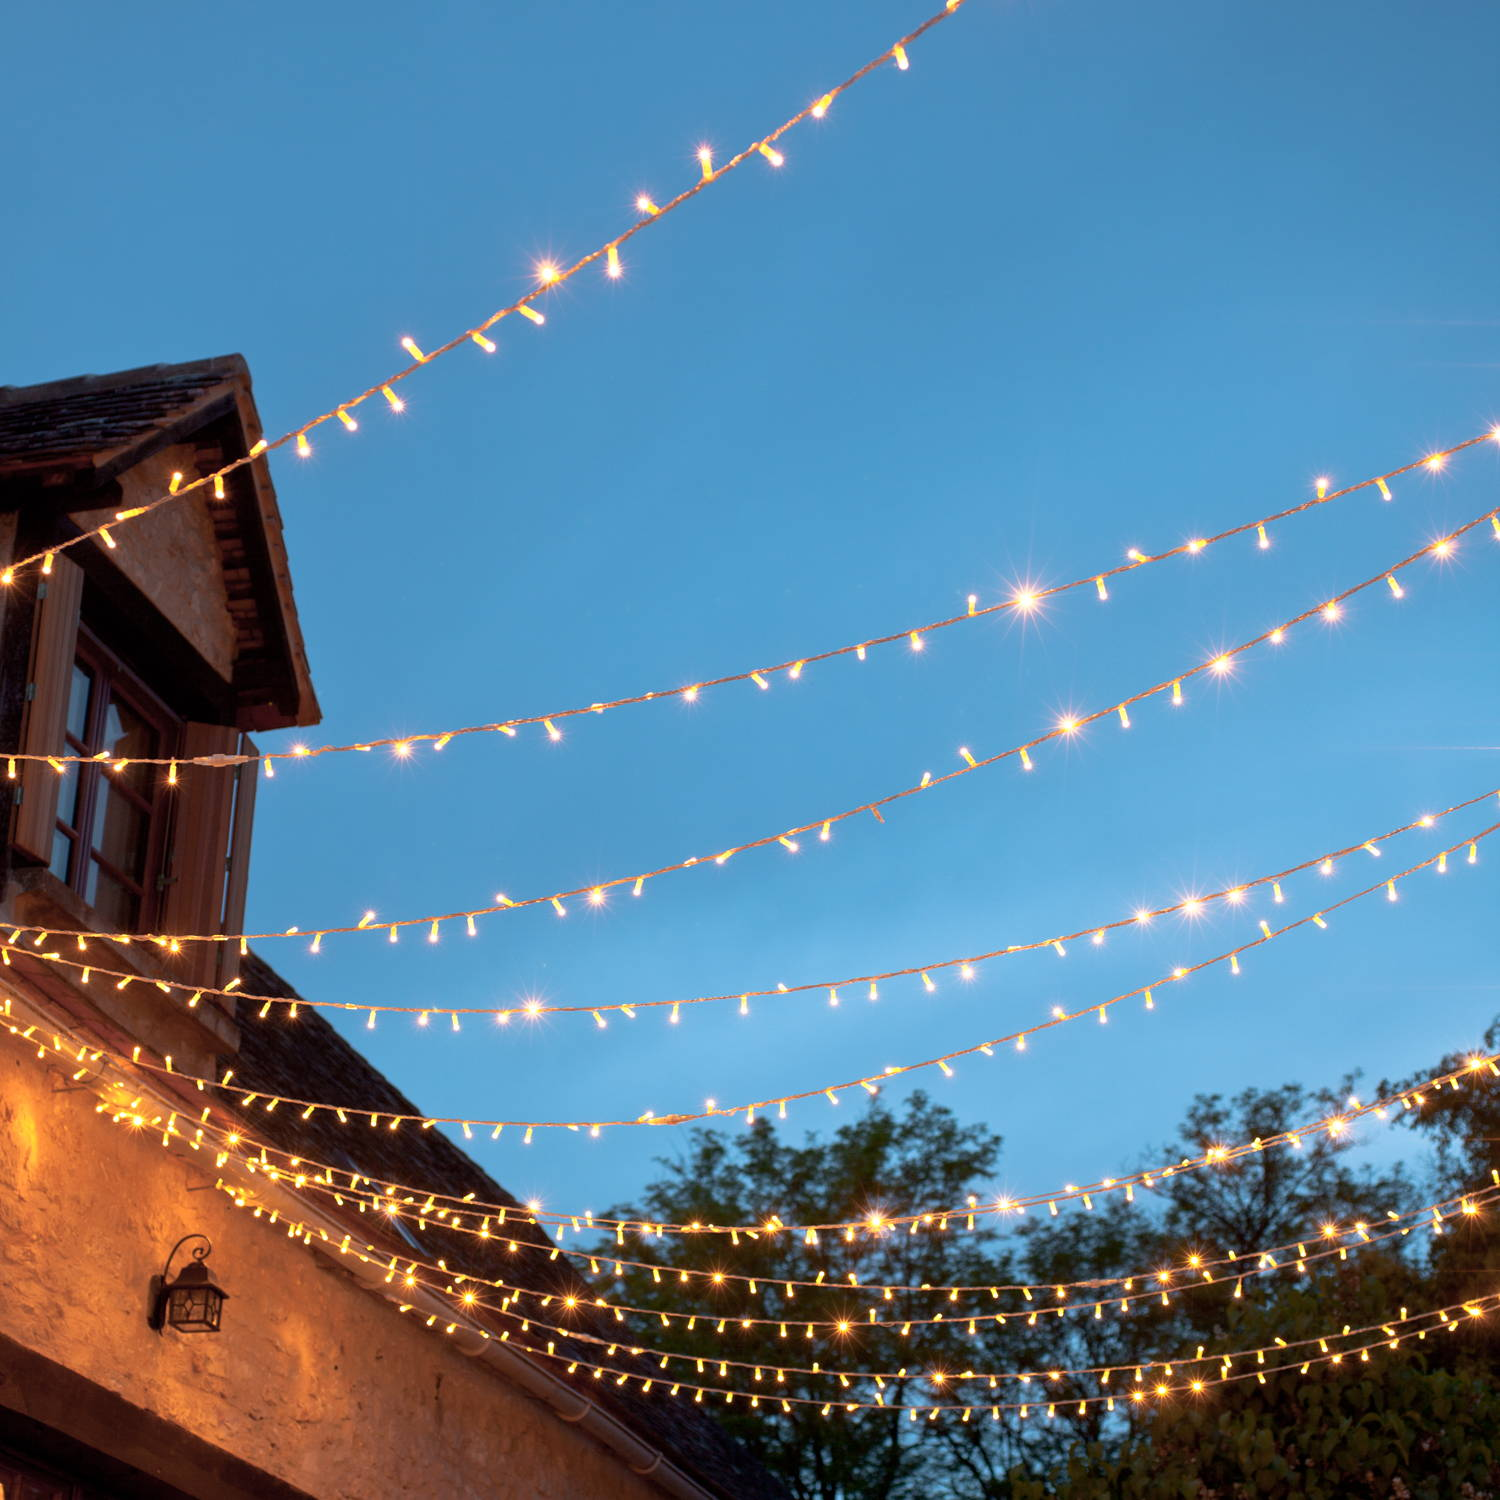 A canopy of warm white fairy lights in a blue sky